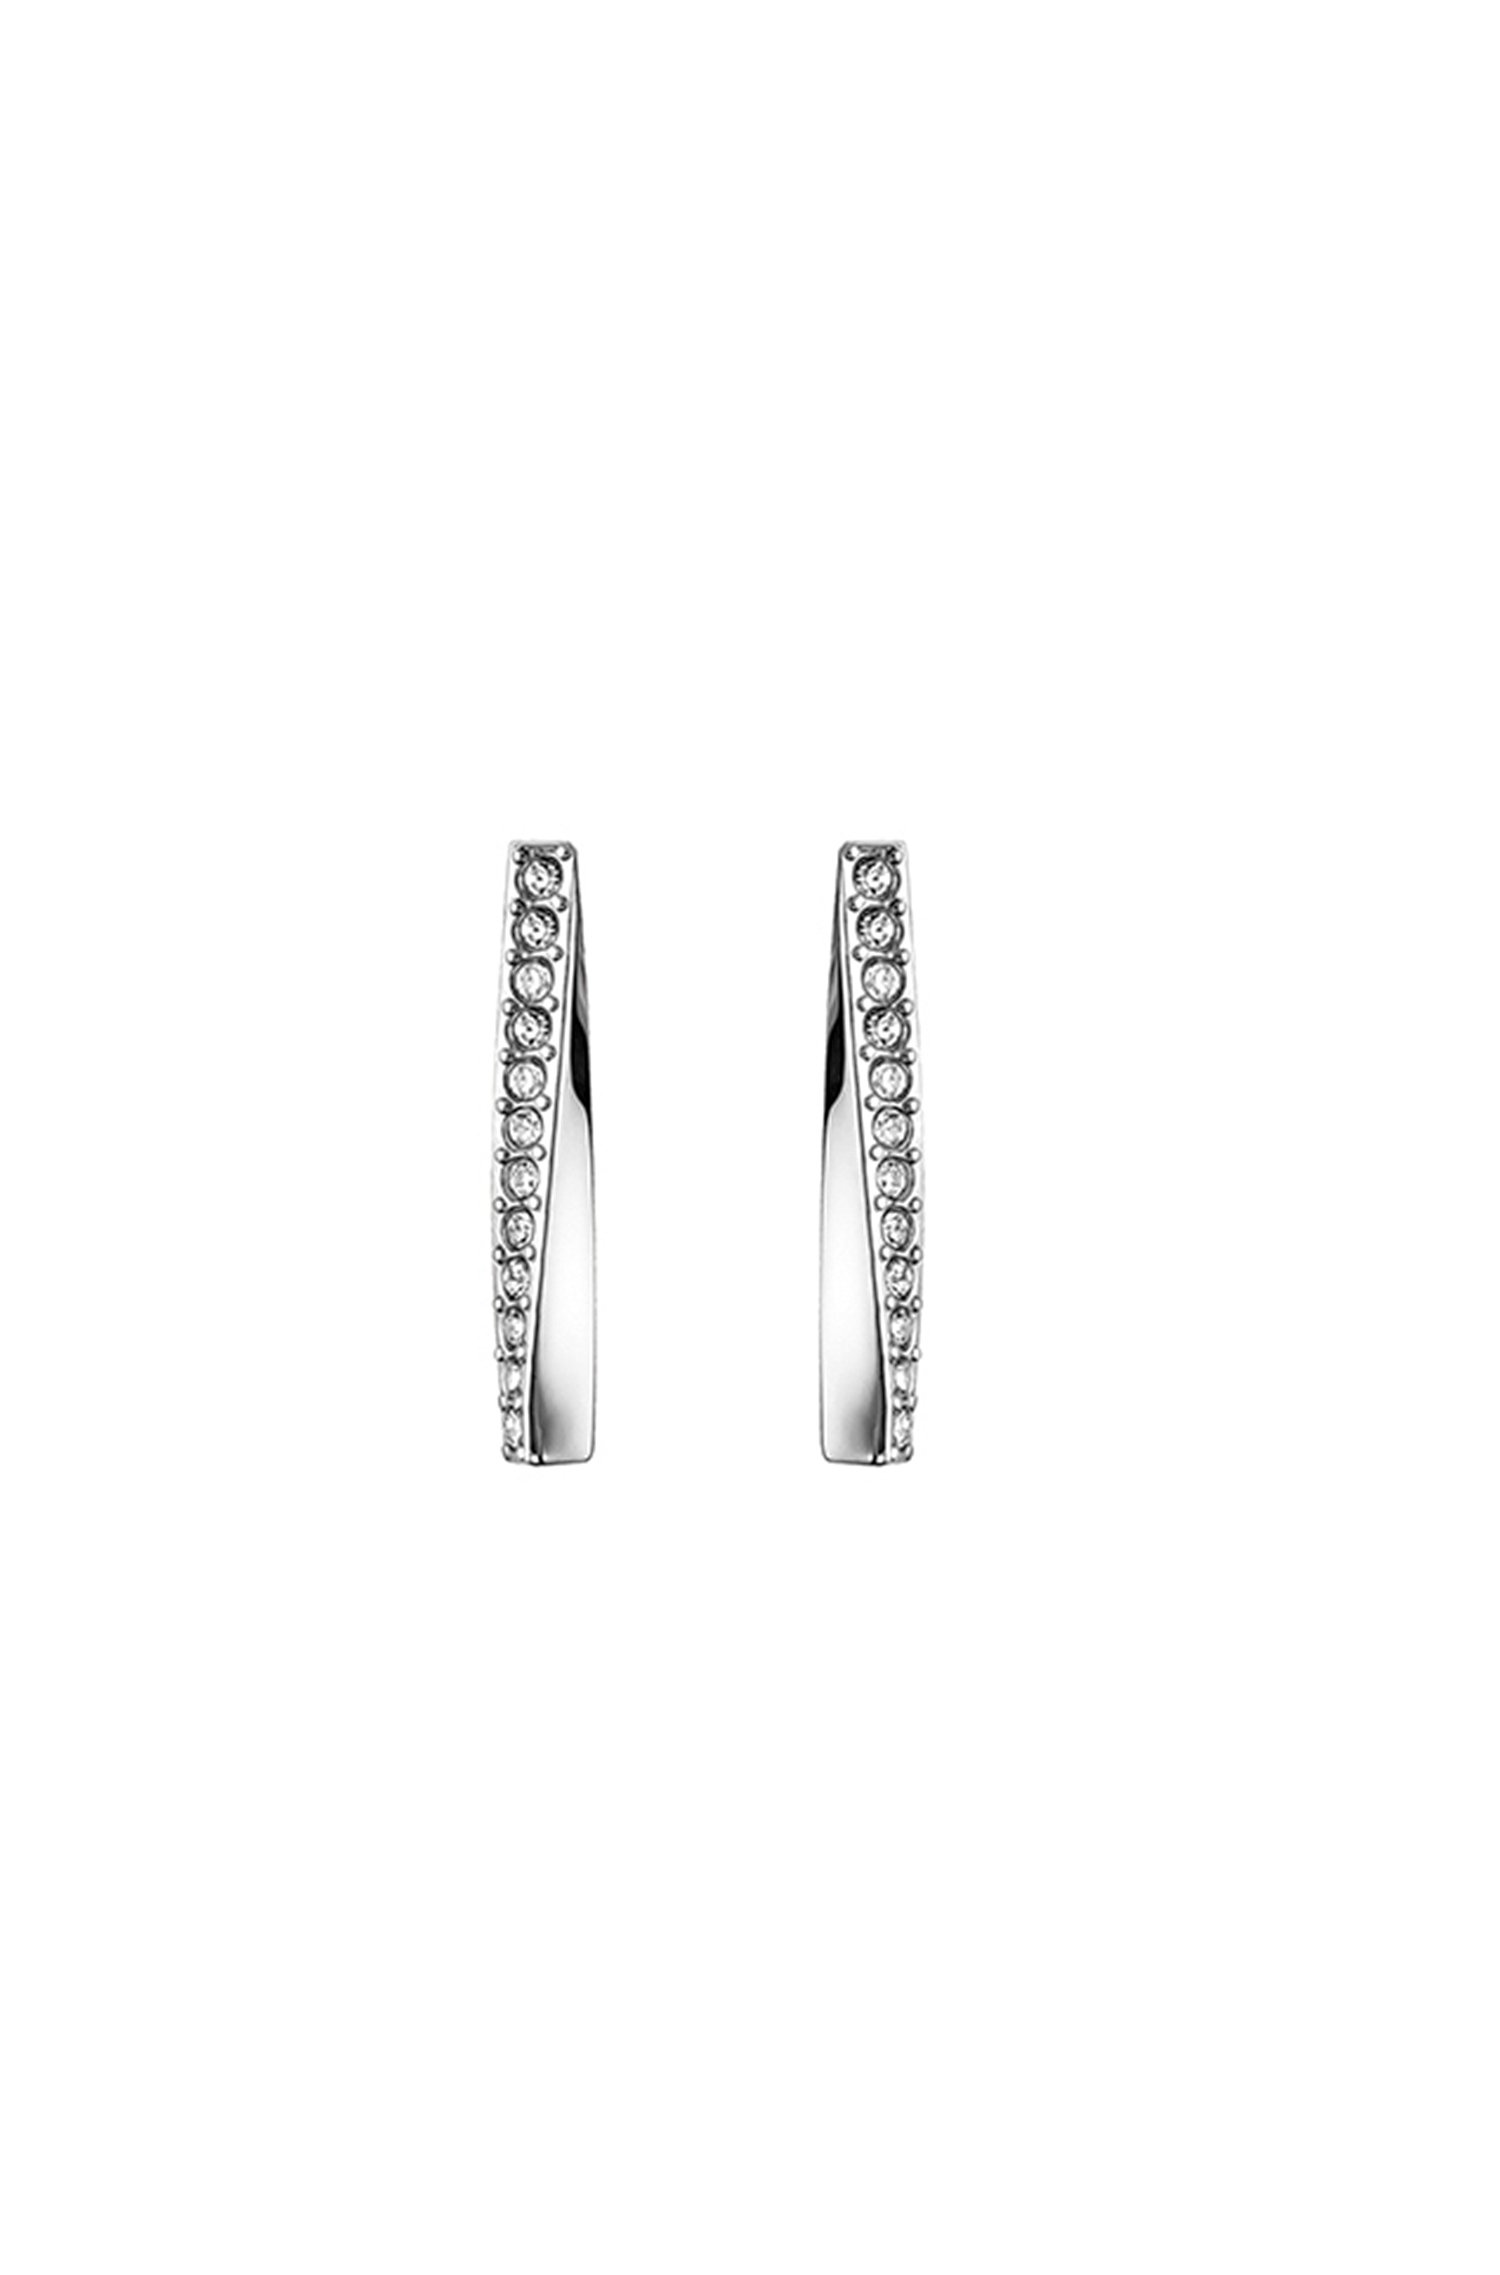 Twisted-bar earrings in stainless steel with crystals, Assorted-Pre-Pack